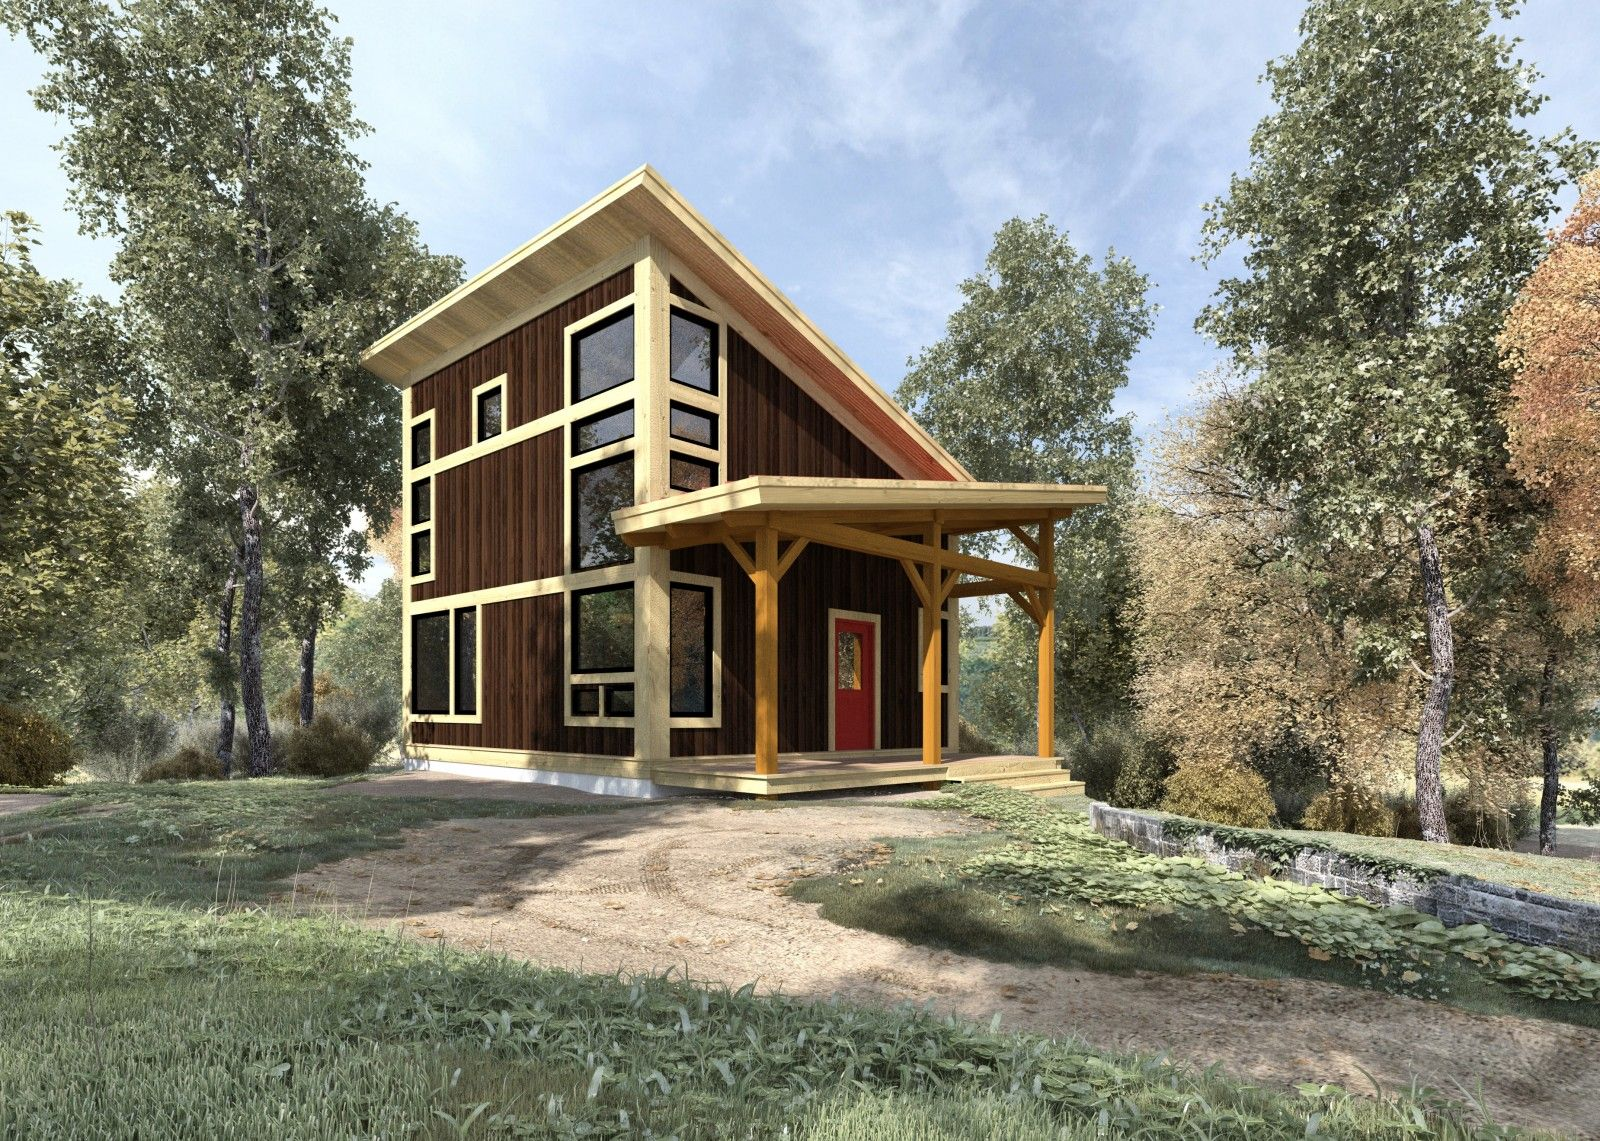 from the cabin series of timber frame home designs